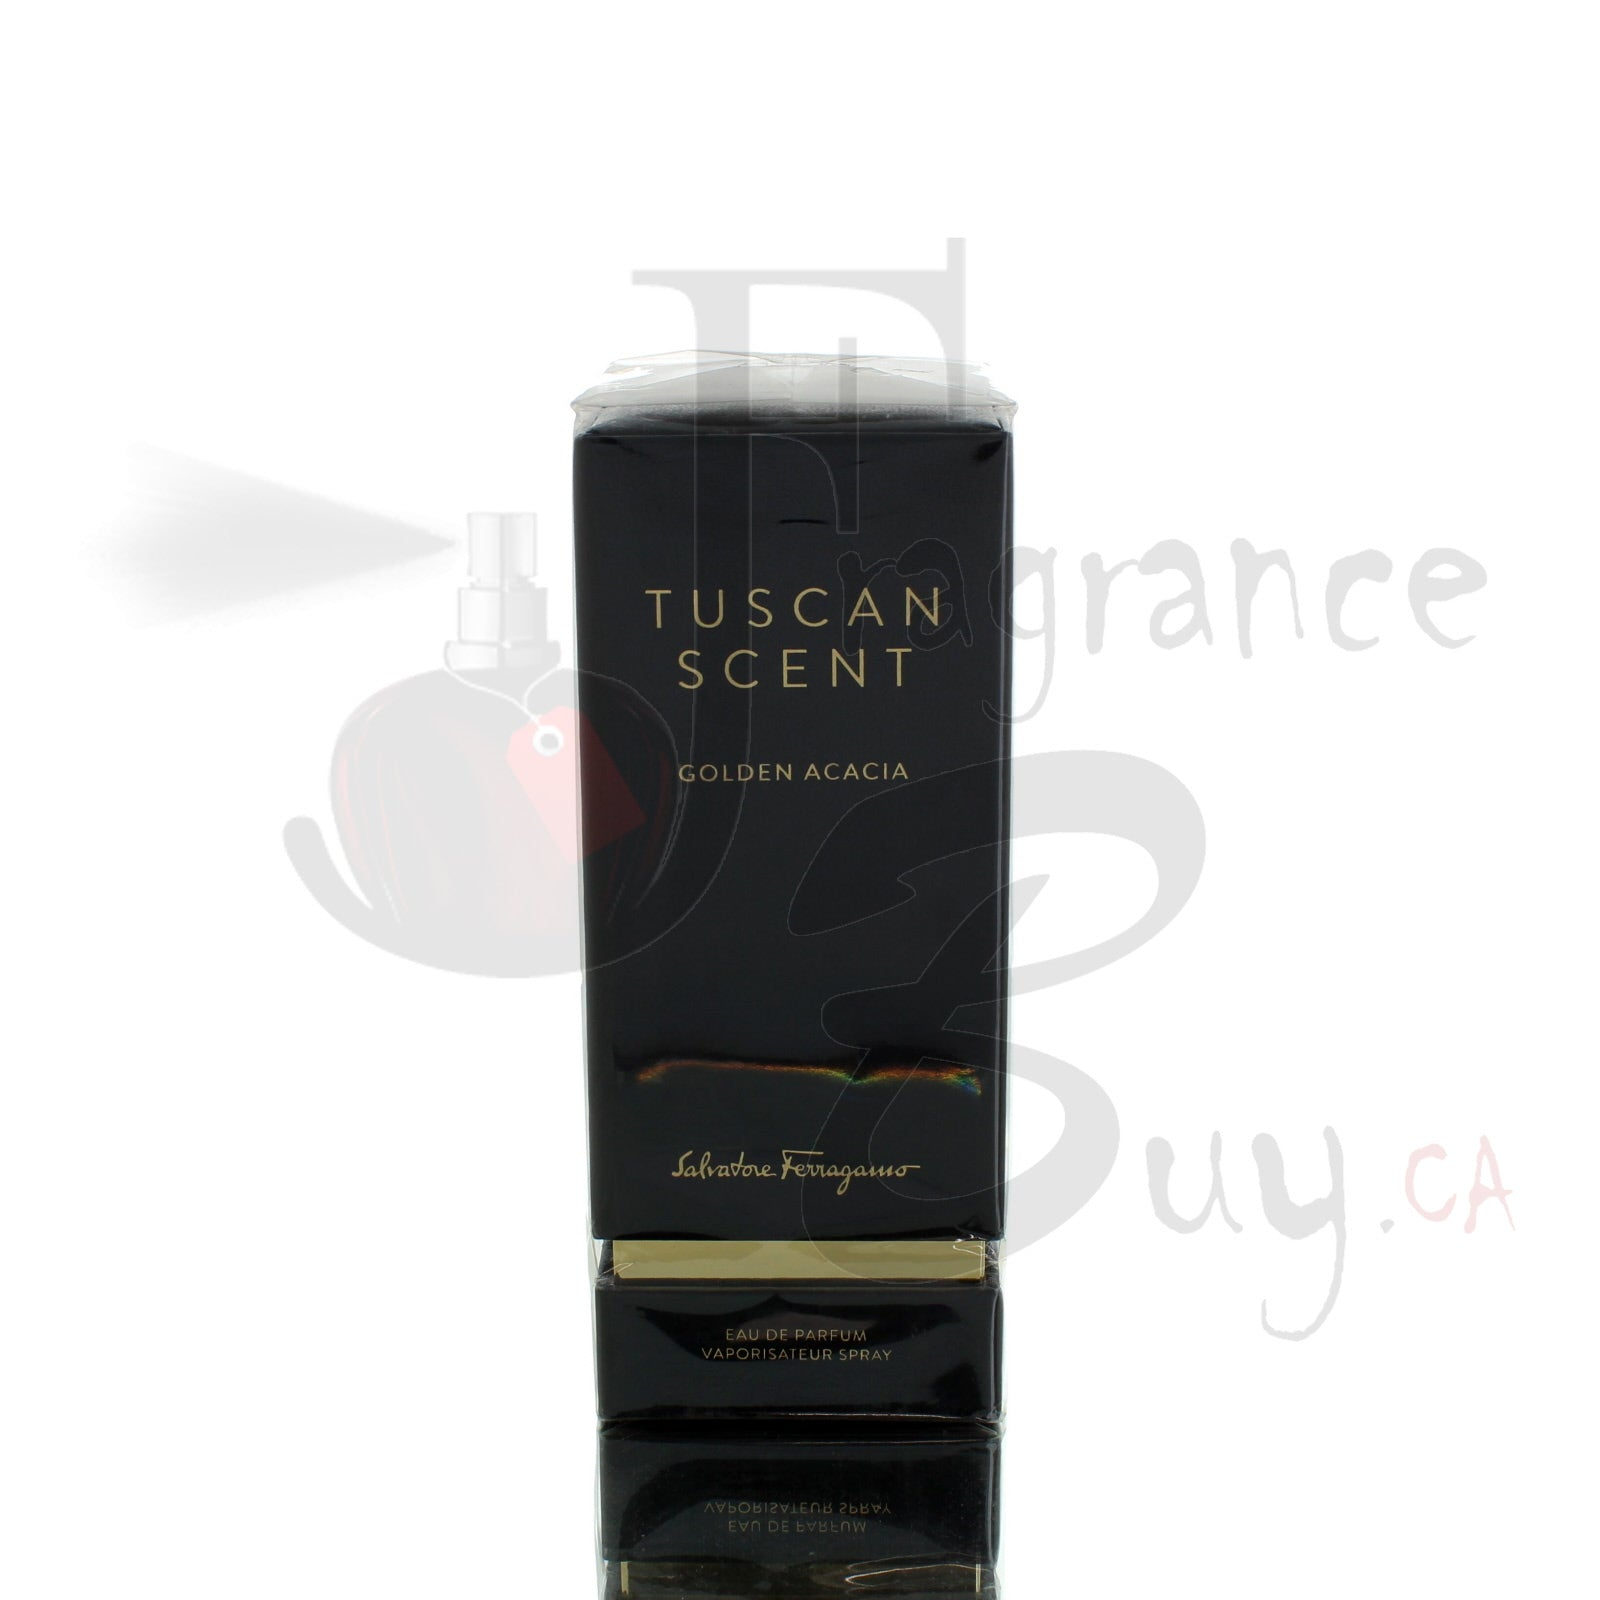 Salvatore Ferragamo Tuscan Scent Golden Acacia For Man/Woman